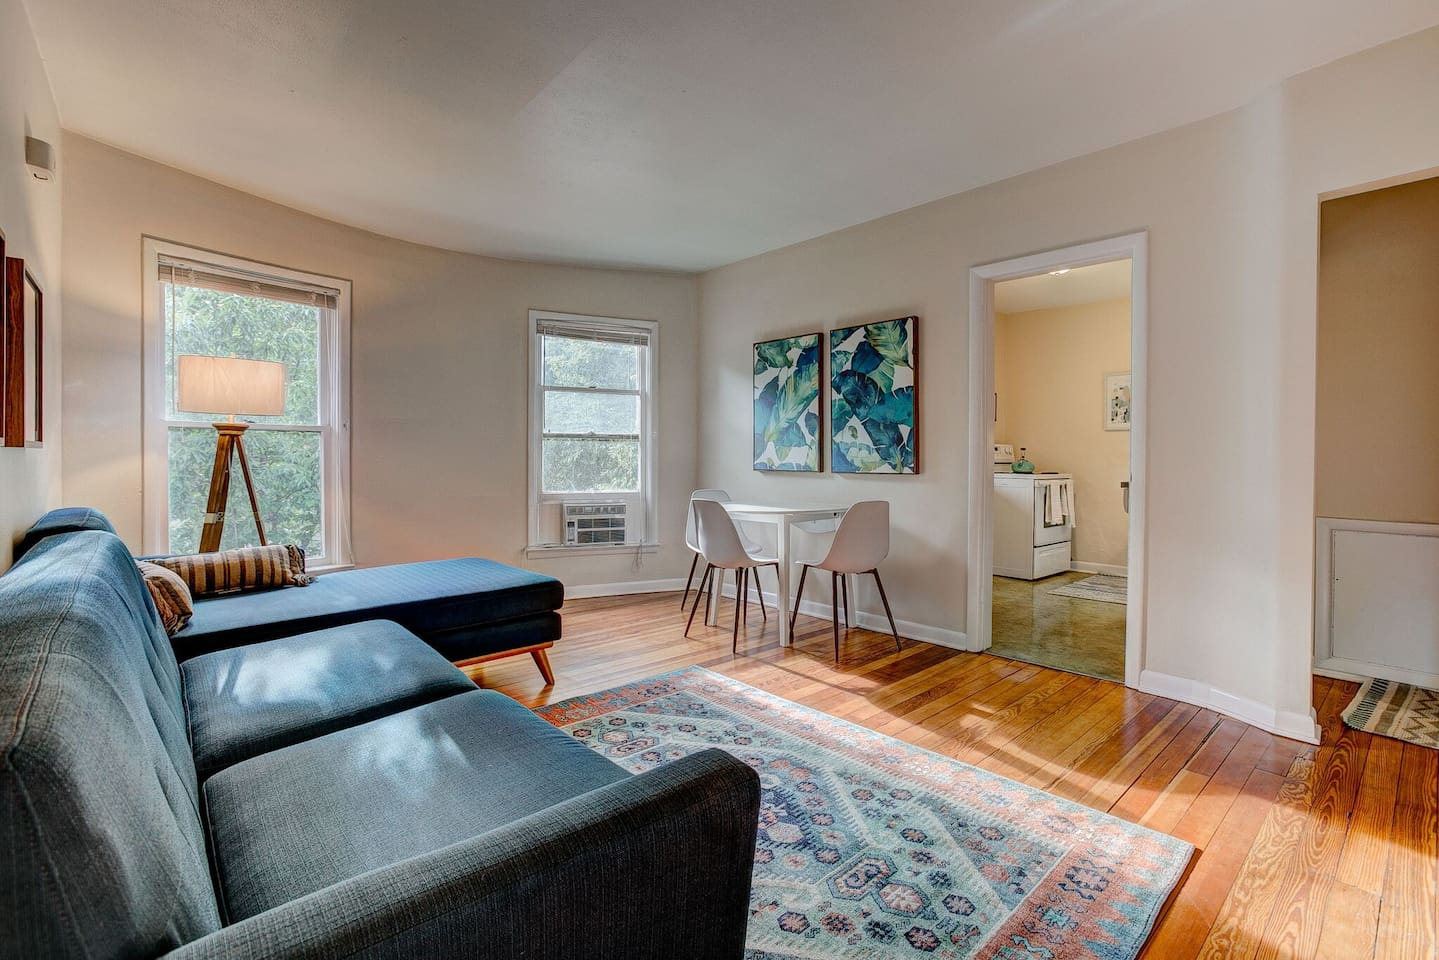 Second story unit in our 1905 built 6-plex. Steps to Downtown and CSU. One bedroom, living room, full kitchen and full bath. Queen sized bed, sectional couch, WiFi, TV, fully outfitted kitchen, Right in the heart of Downtown!